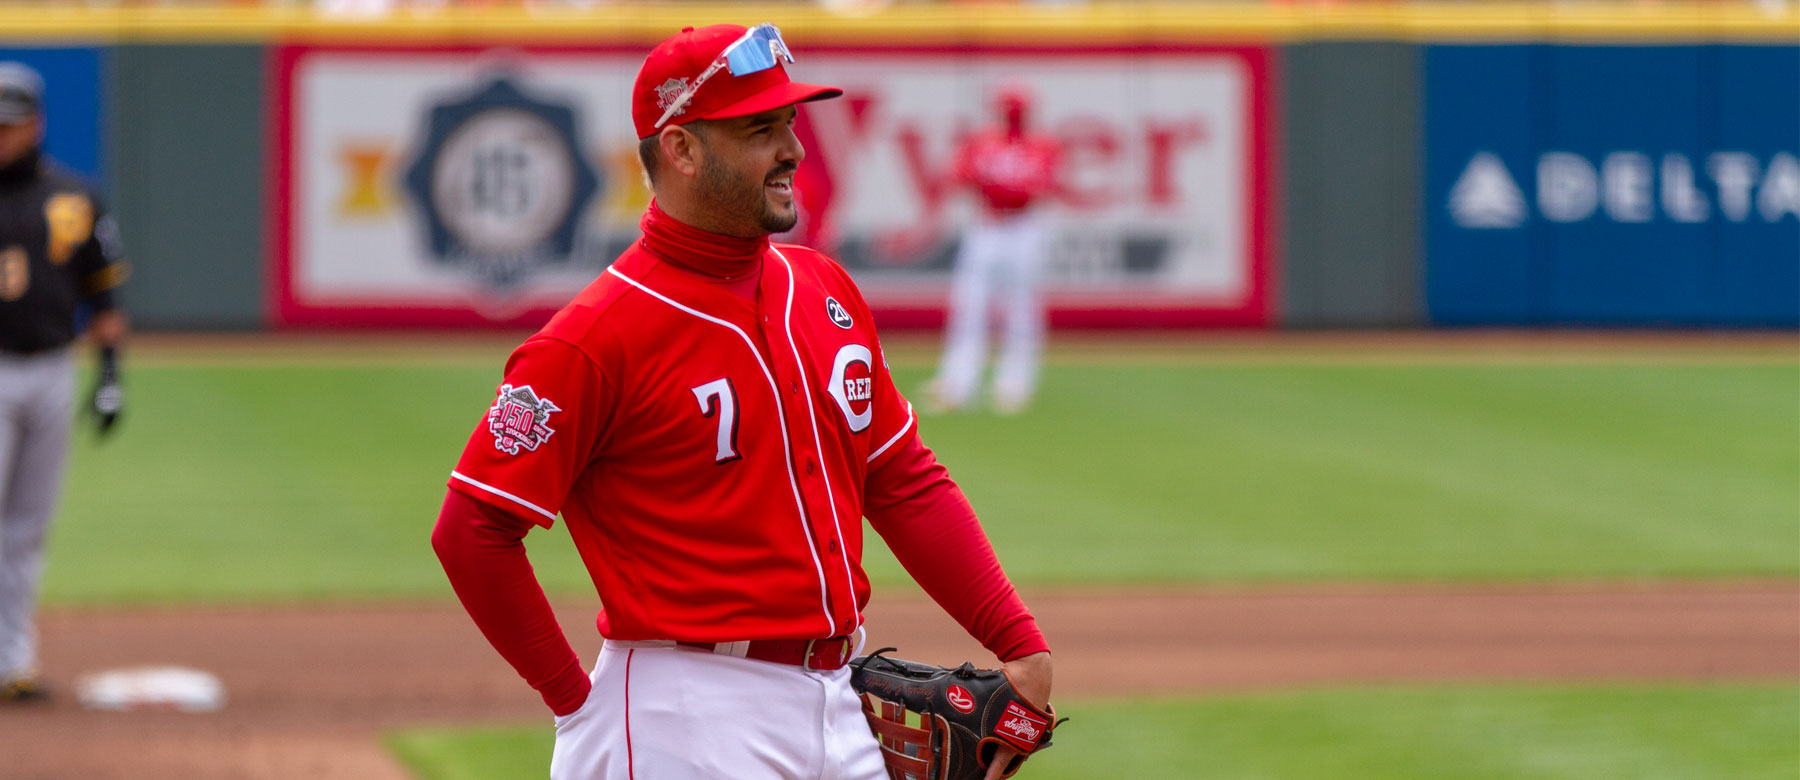 quality design 37a58 459e5 The Reds Eugenio Suarez: #10 at third base, #1 in our hearts ...